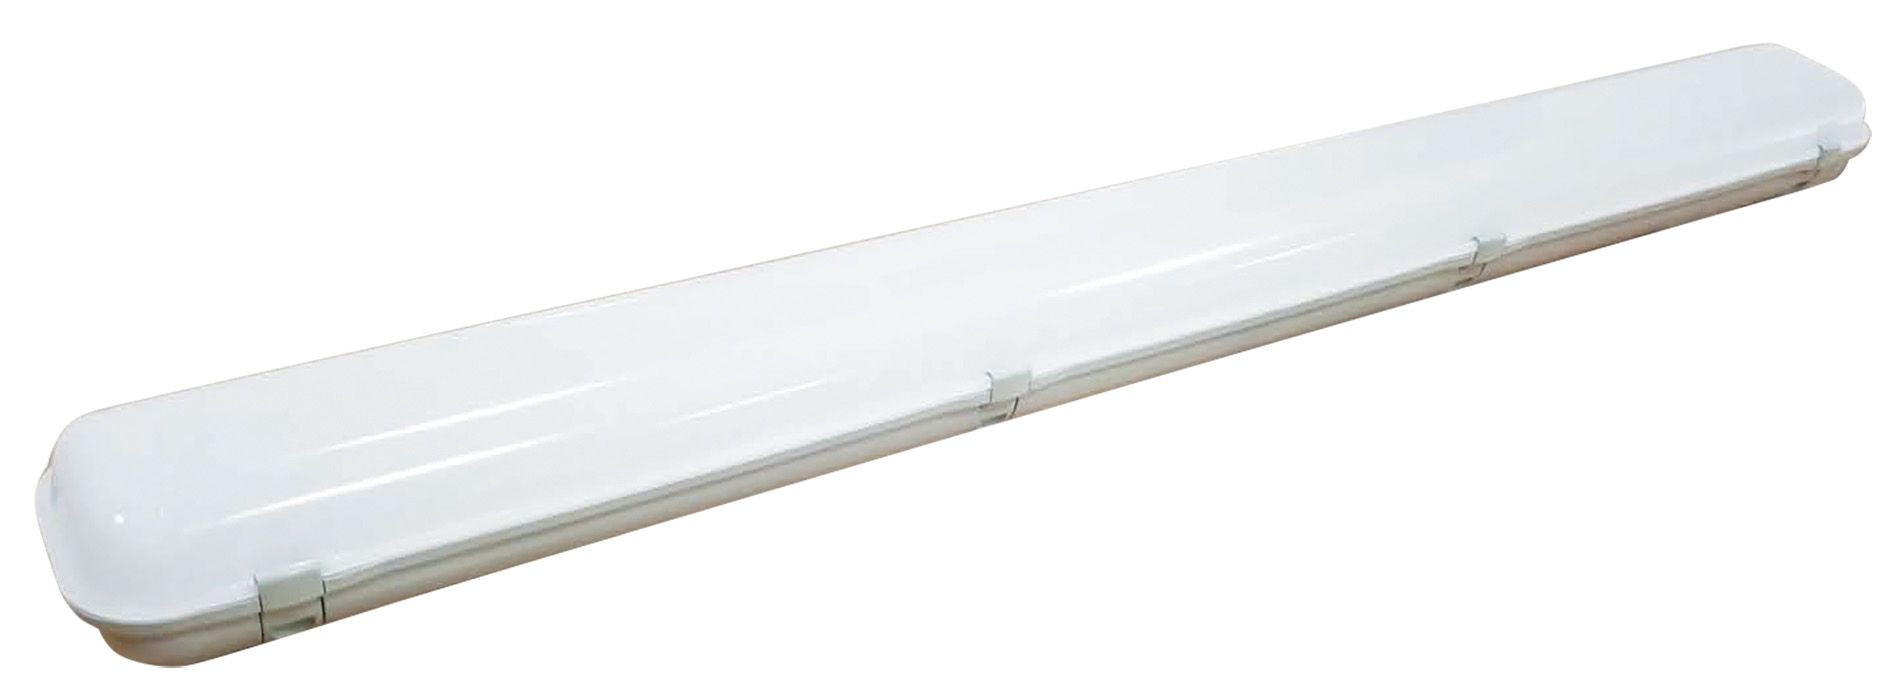 ORR136-1274EO3S 19.5W LED Batten Light